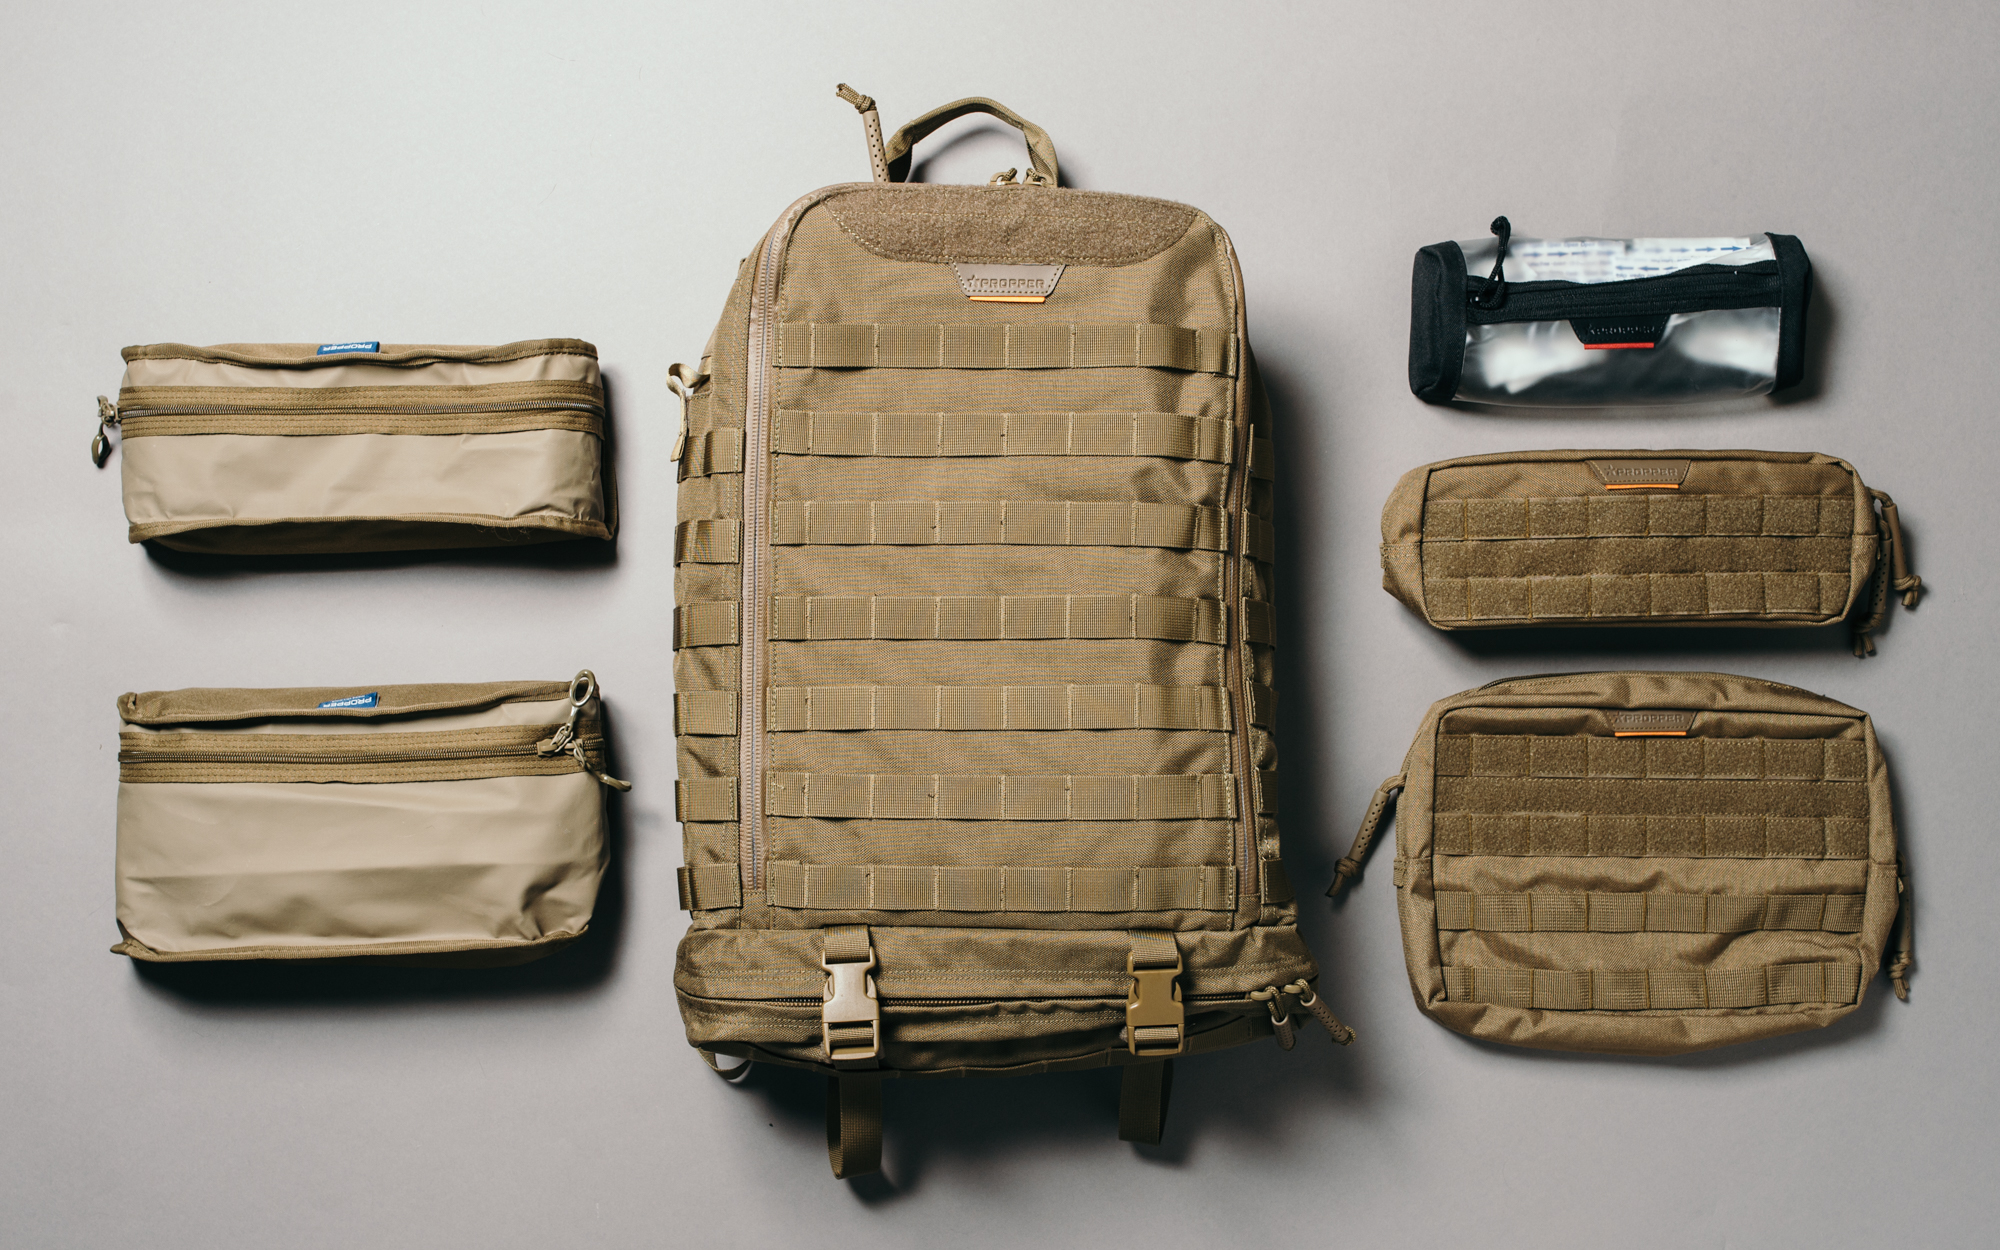 An Intro to MOLLE, PALS, and Your Everyday Carry